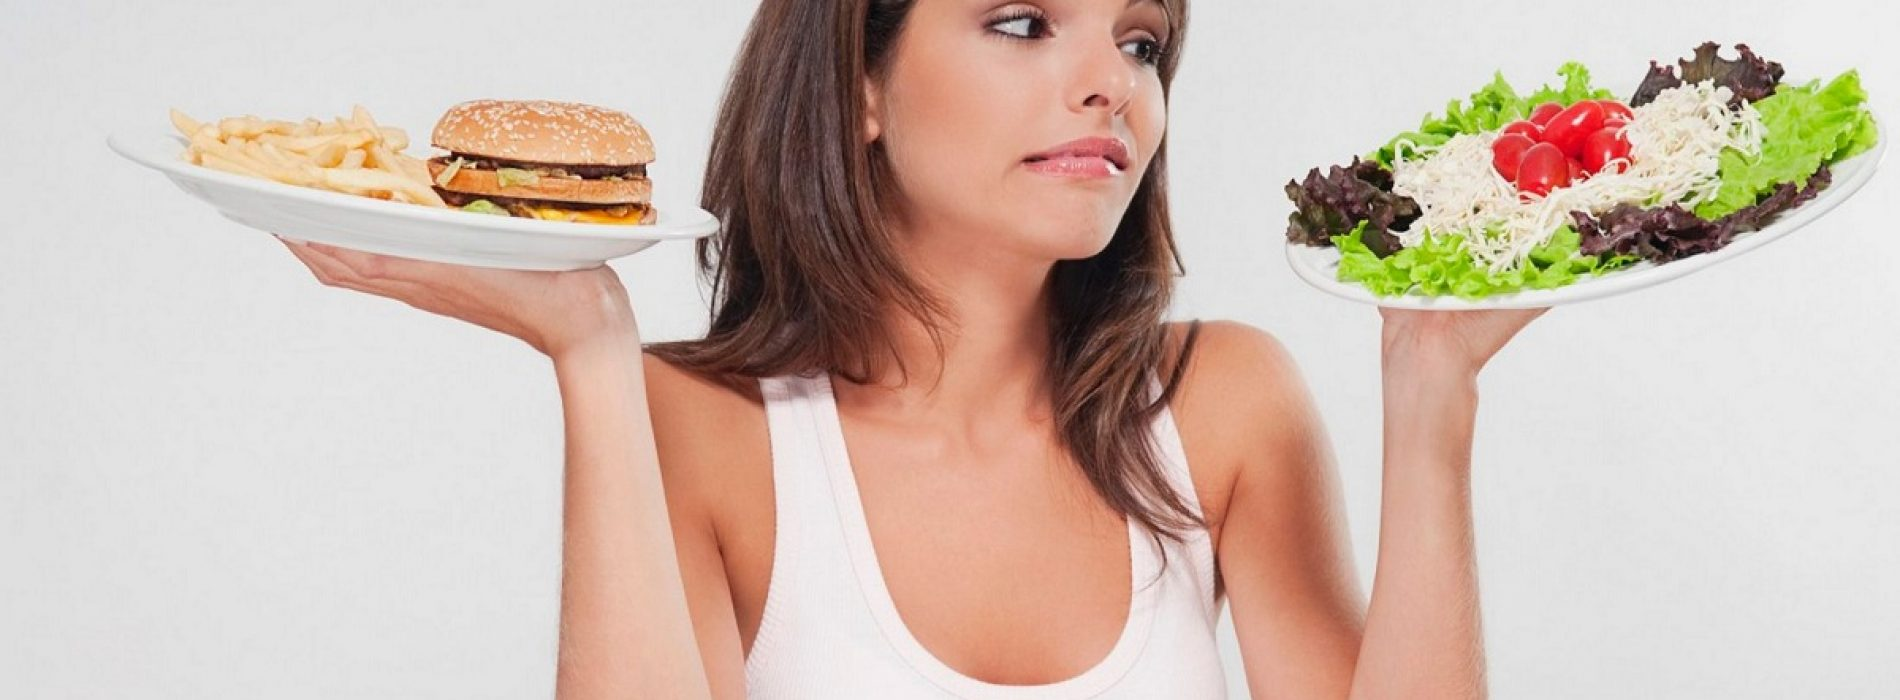 Weight Reduction With Raw Food Diet – Could It Be Sustainable and Advantageous?